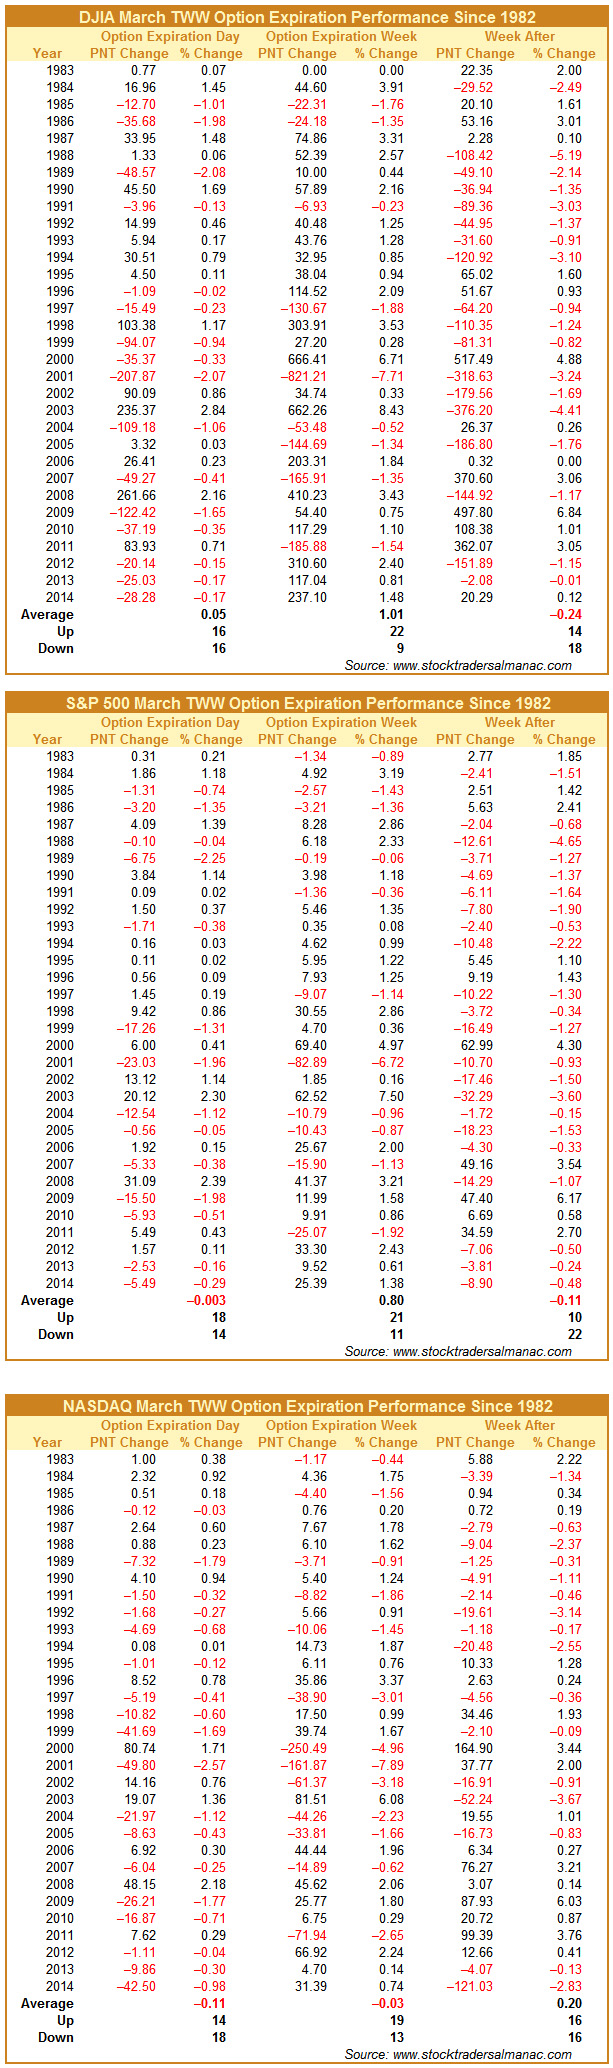 [DJIA, S&P 500 & NASDAQ March Option Expiration Performance since 1983]